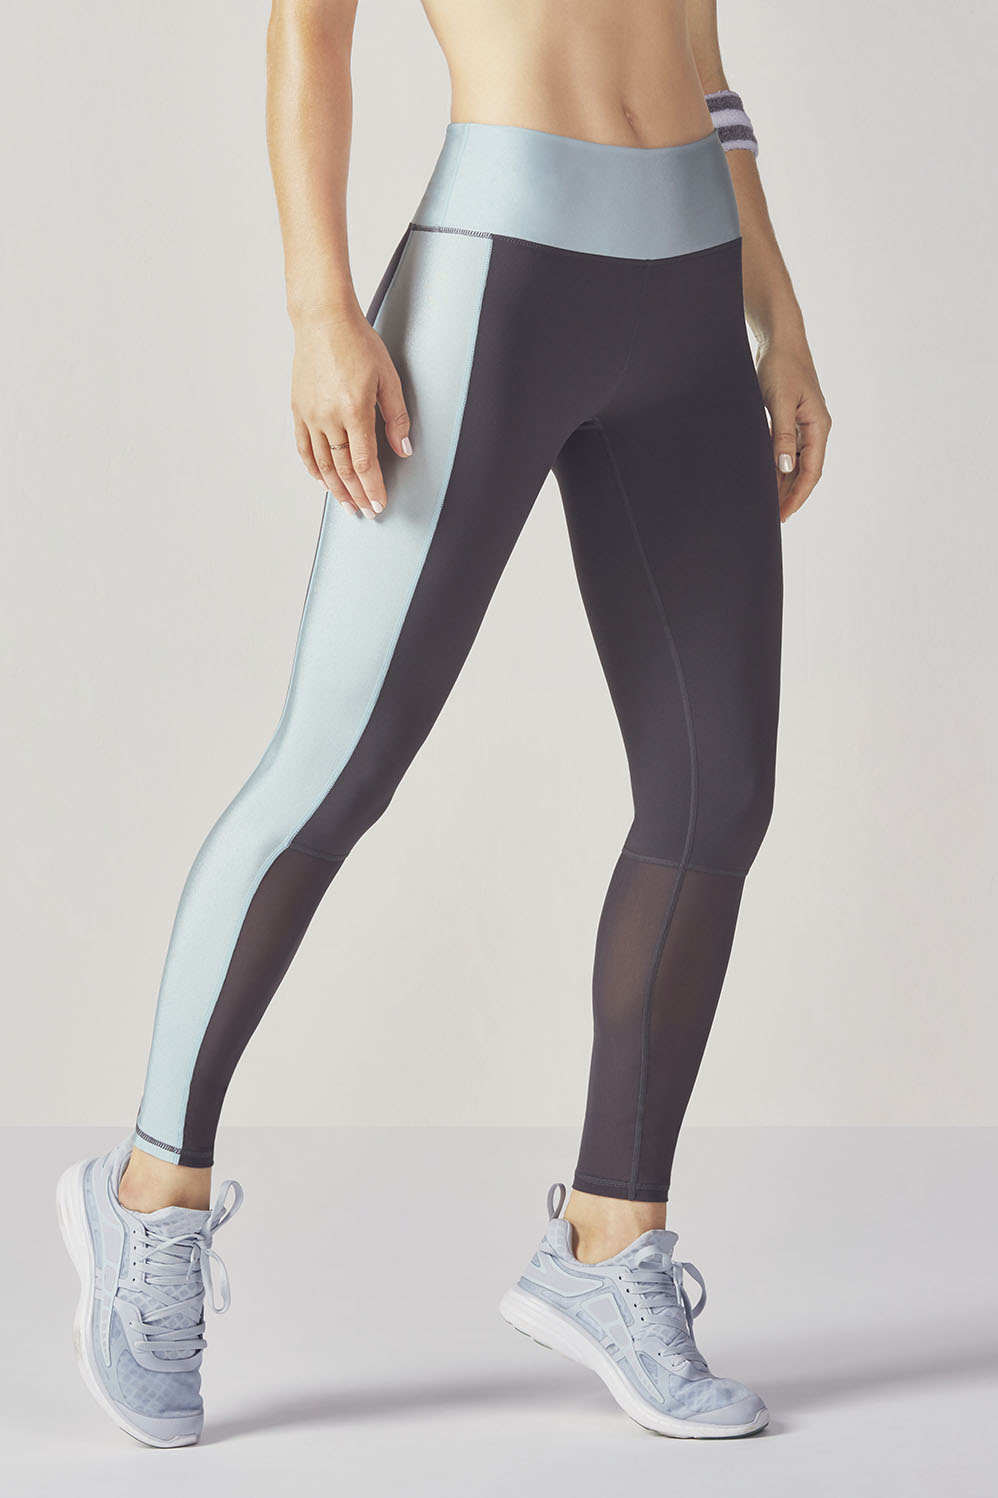 Fabletics Tight High-Waisted Mesh Powerhold Legging Womens Gray Size S